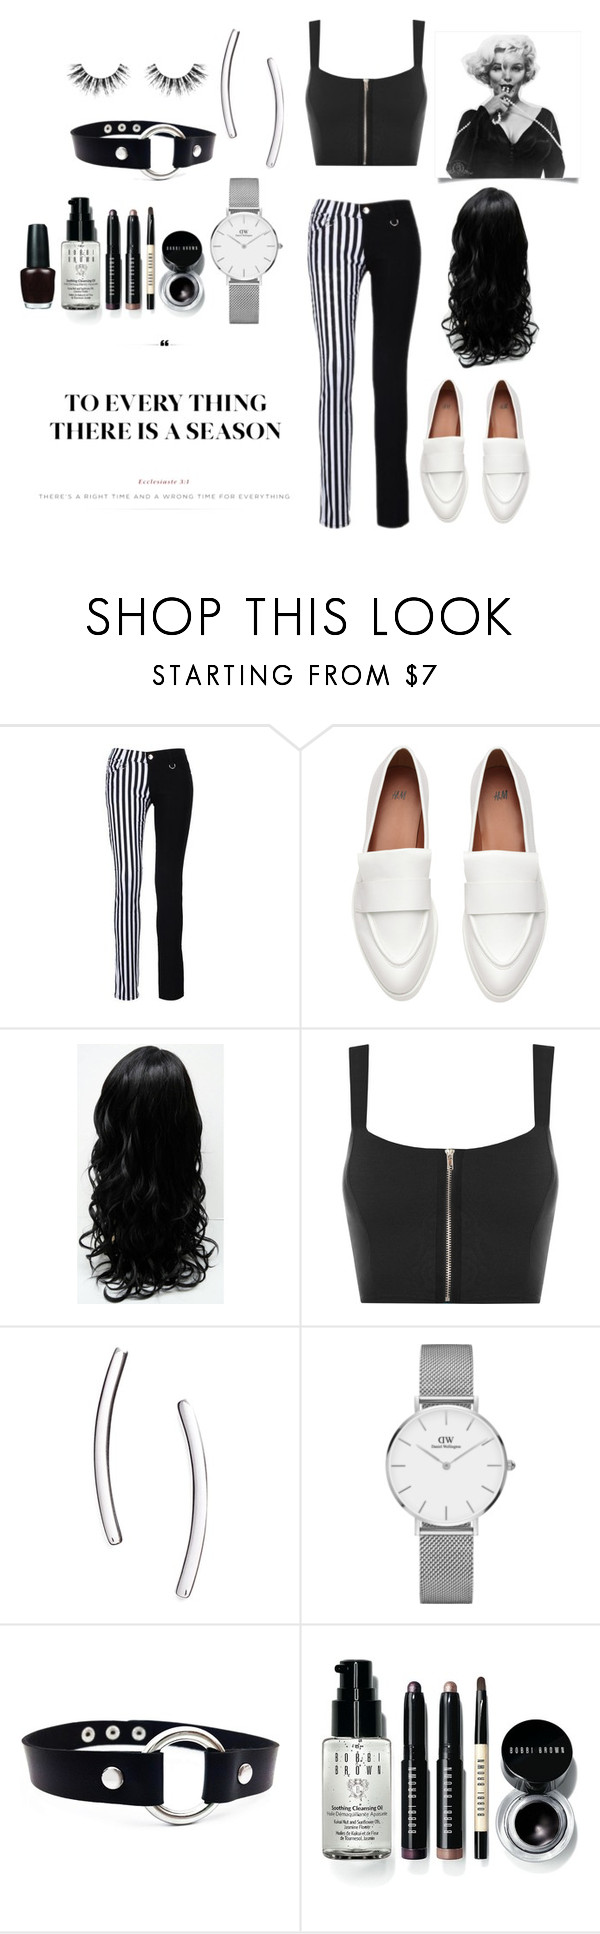 """""""239"""" by itzqtpie ❤ liked on Polyvore featuring WearAll, Nadri, Daniel Wellington, Bobbi Brown Cosmetics and Velour Lashes"""